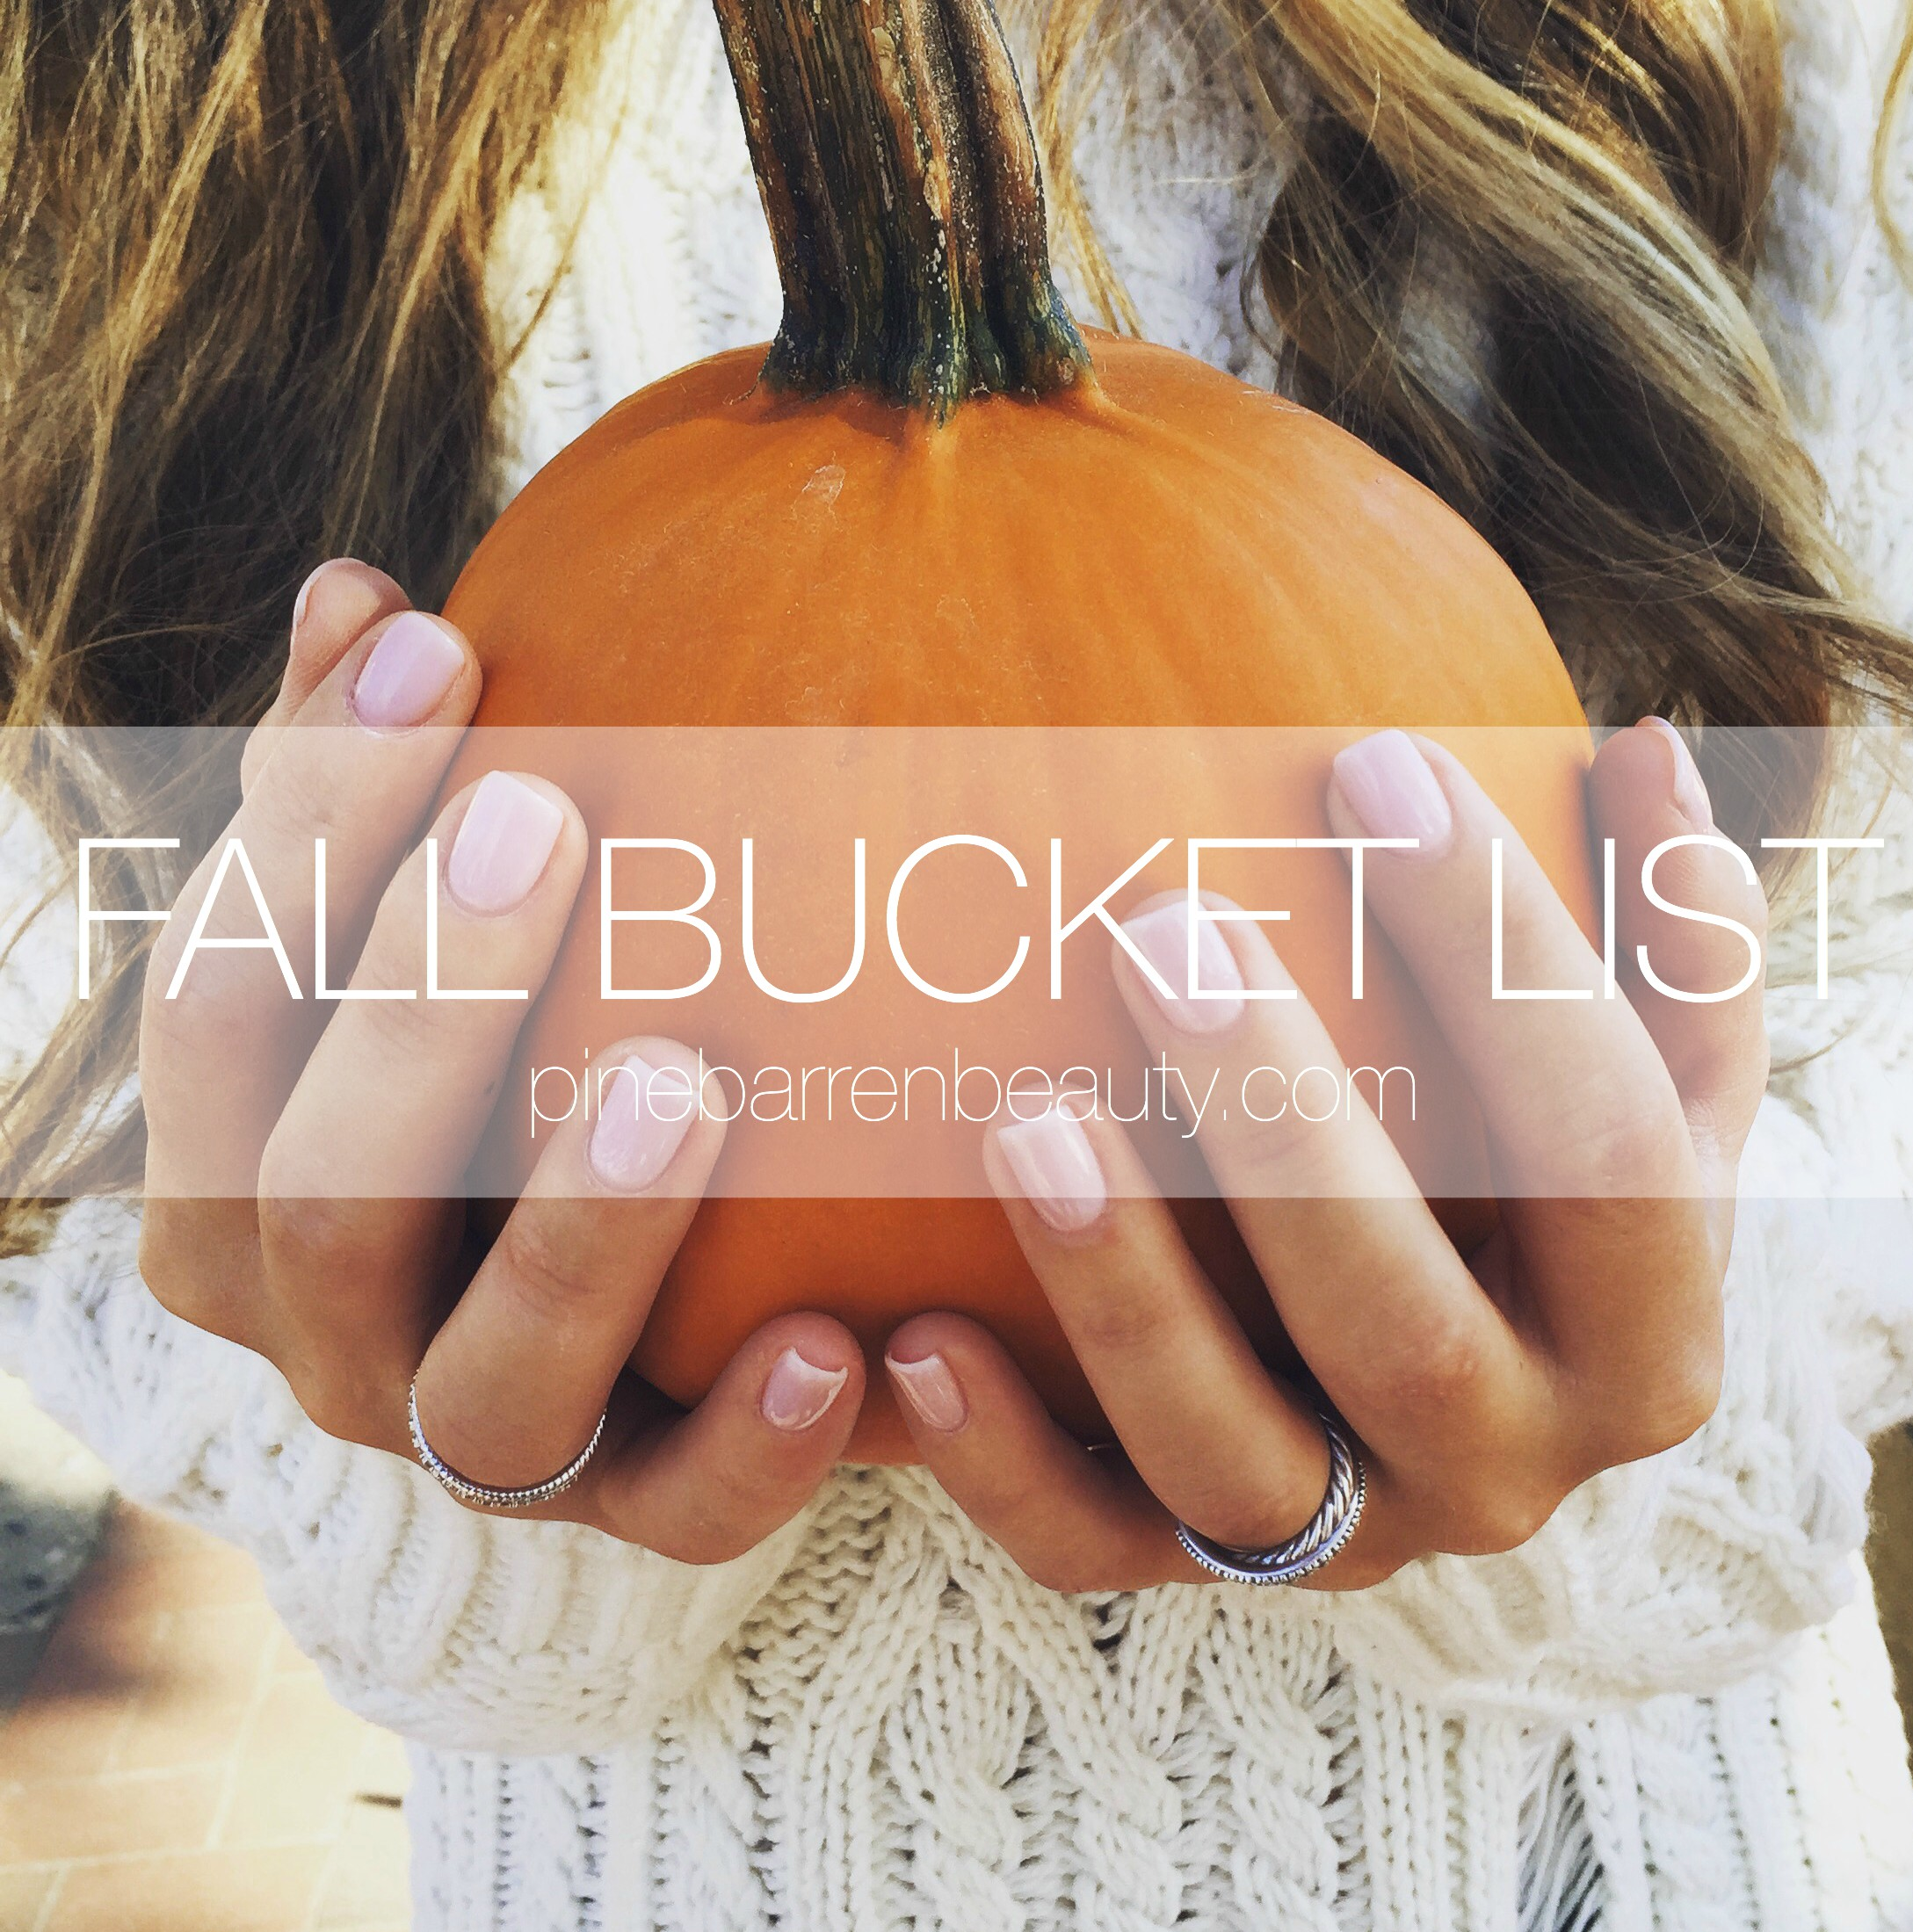 fall bucket list // pinebarrenbeauty.com